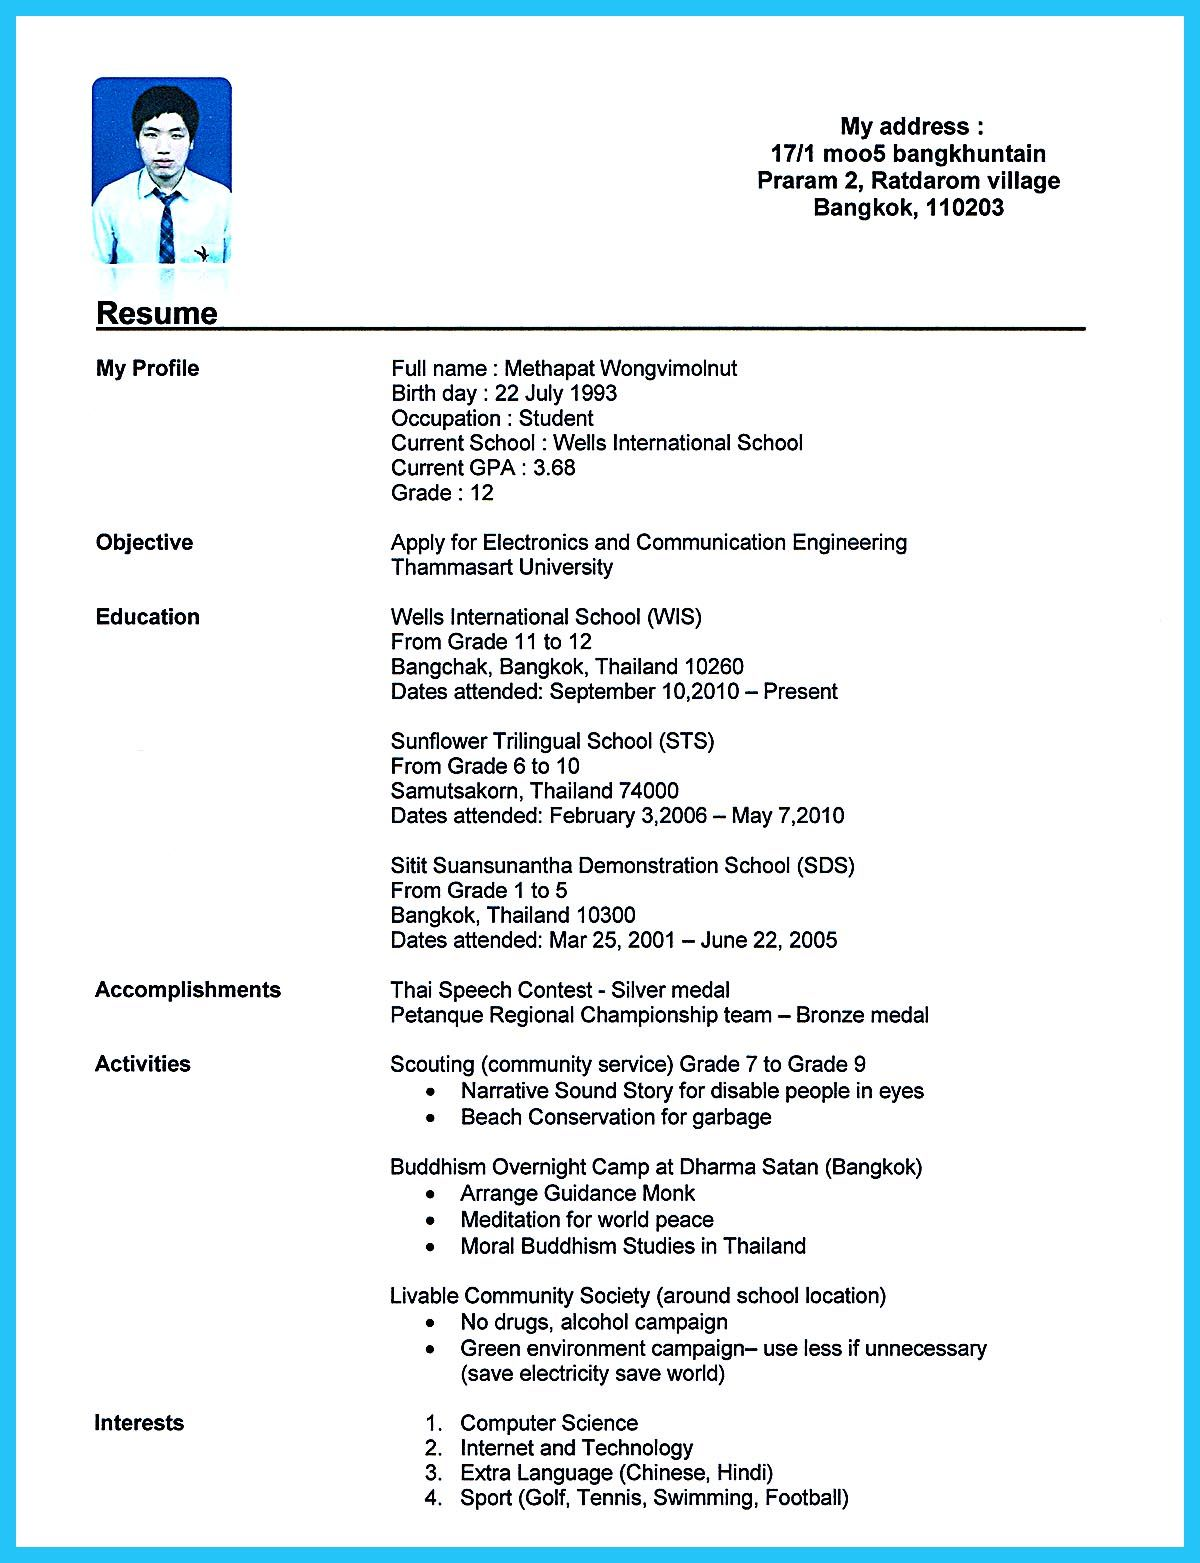 sample job resume templates for high school students student even with limited work experience graduate resume template templates and builder resumes - Free Student Resume Templates